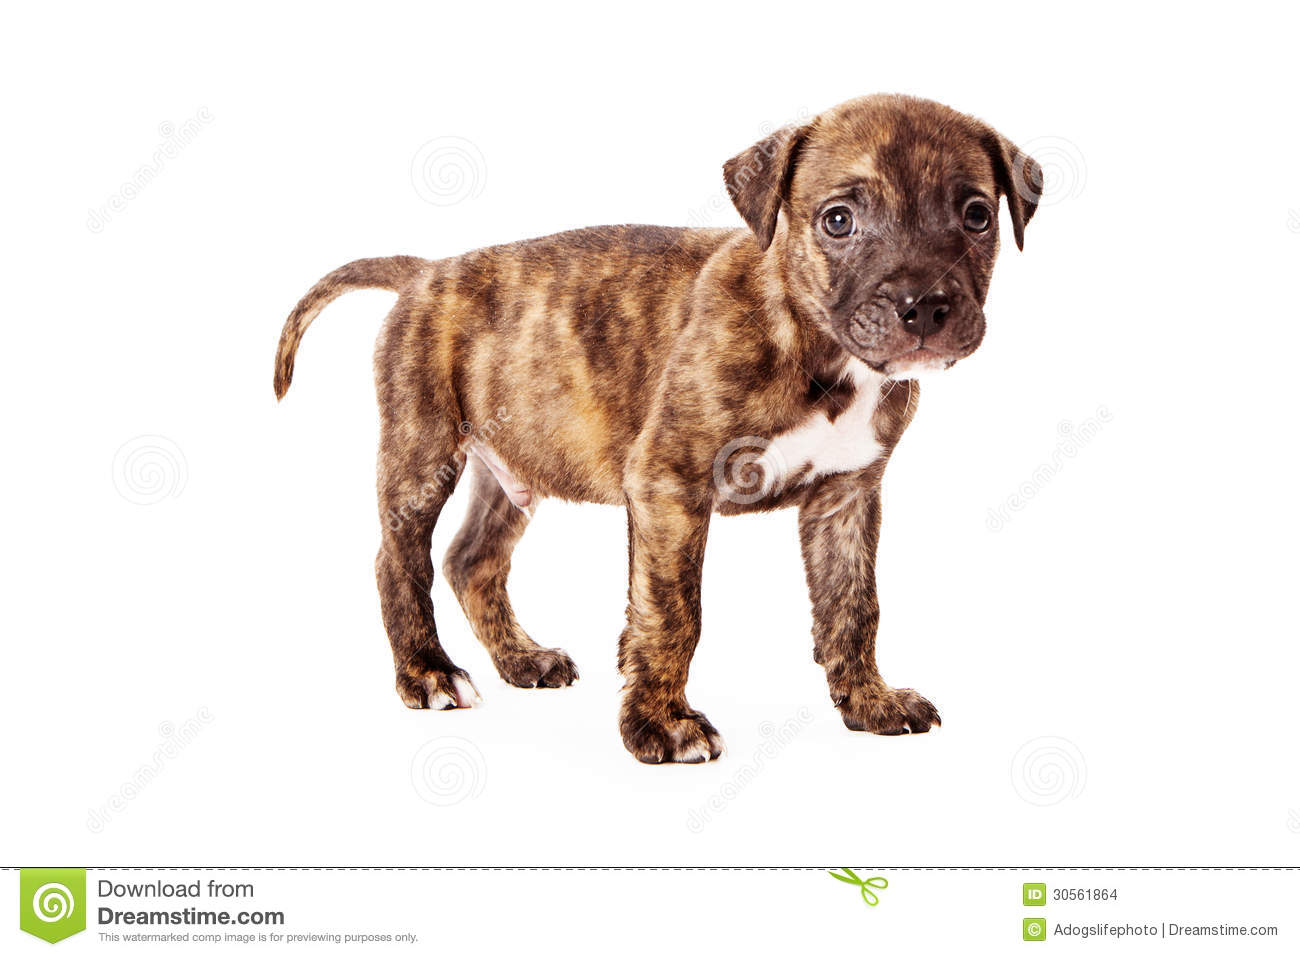 Brindle Colored Dogs Breeds To Download Brindle Colored Dogs Breeds ...